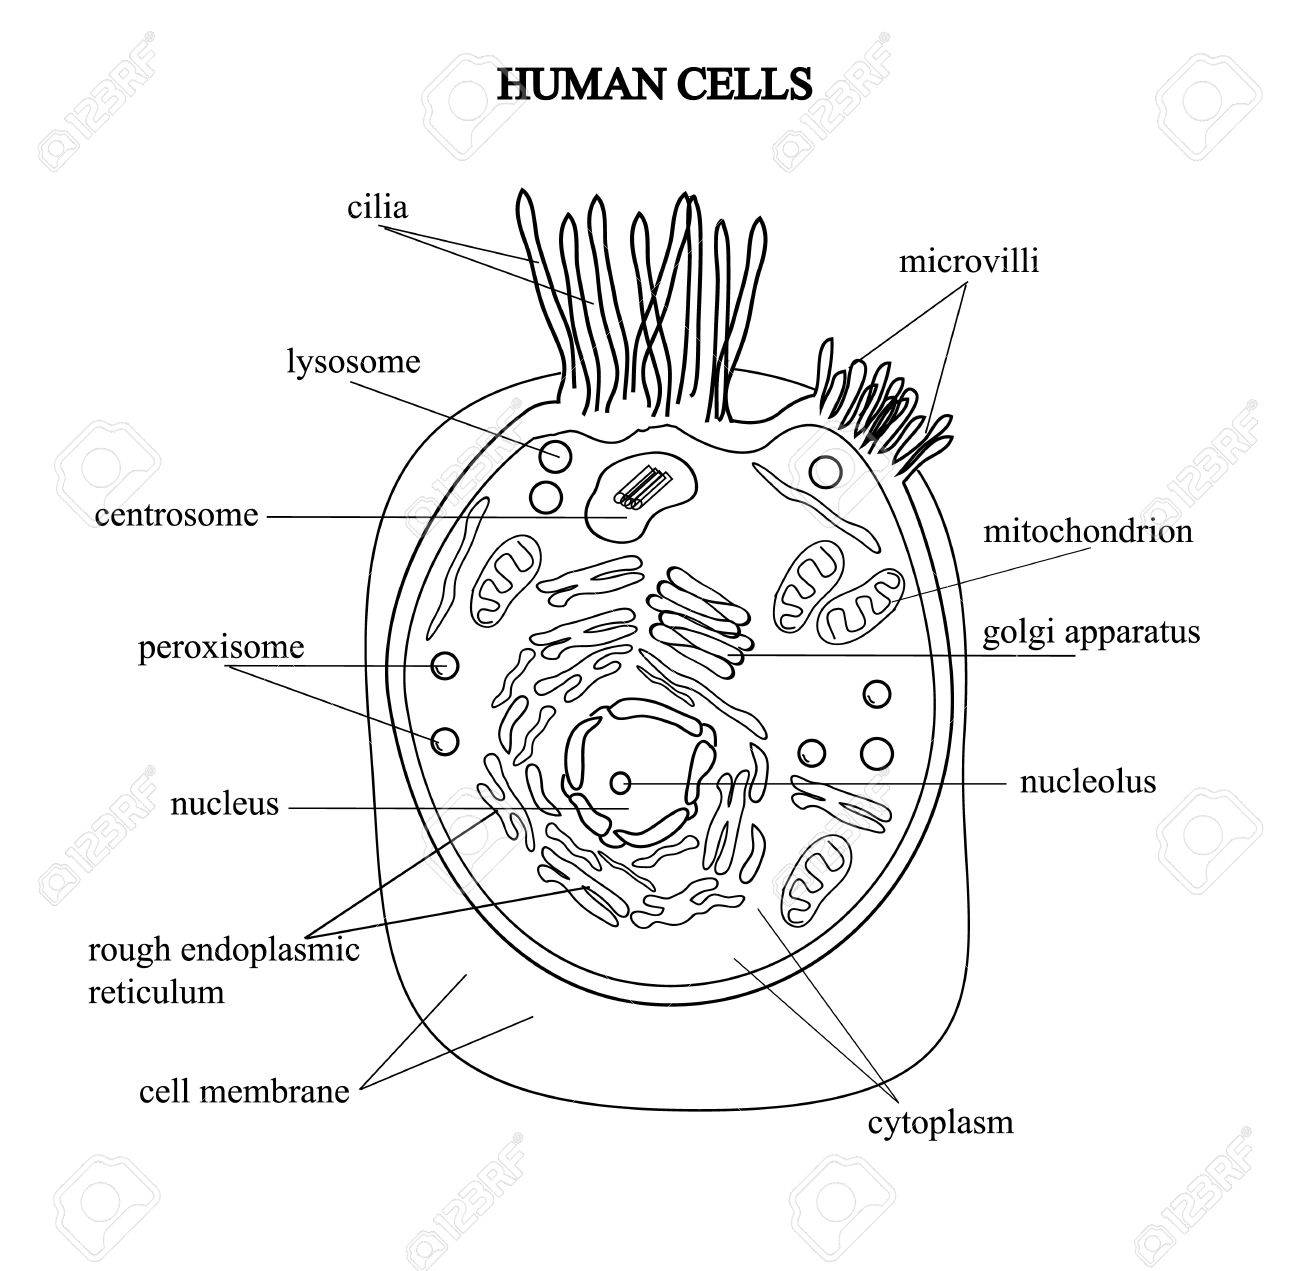 hight resolution of the structure of the human cells in a graphic image cell components stock vector